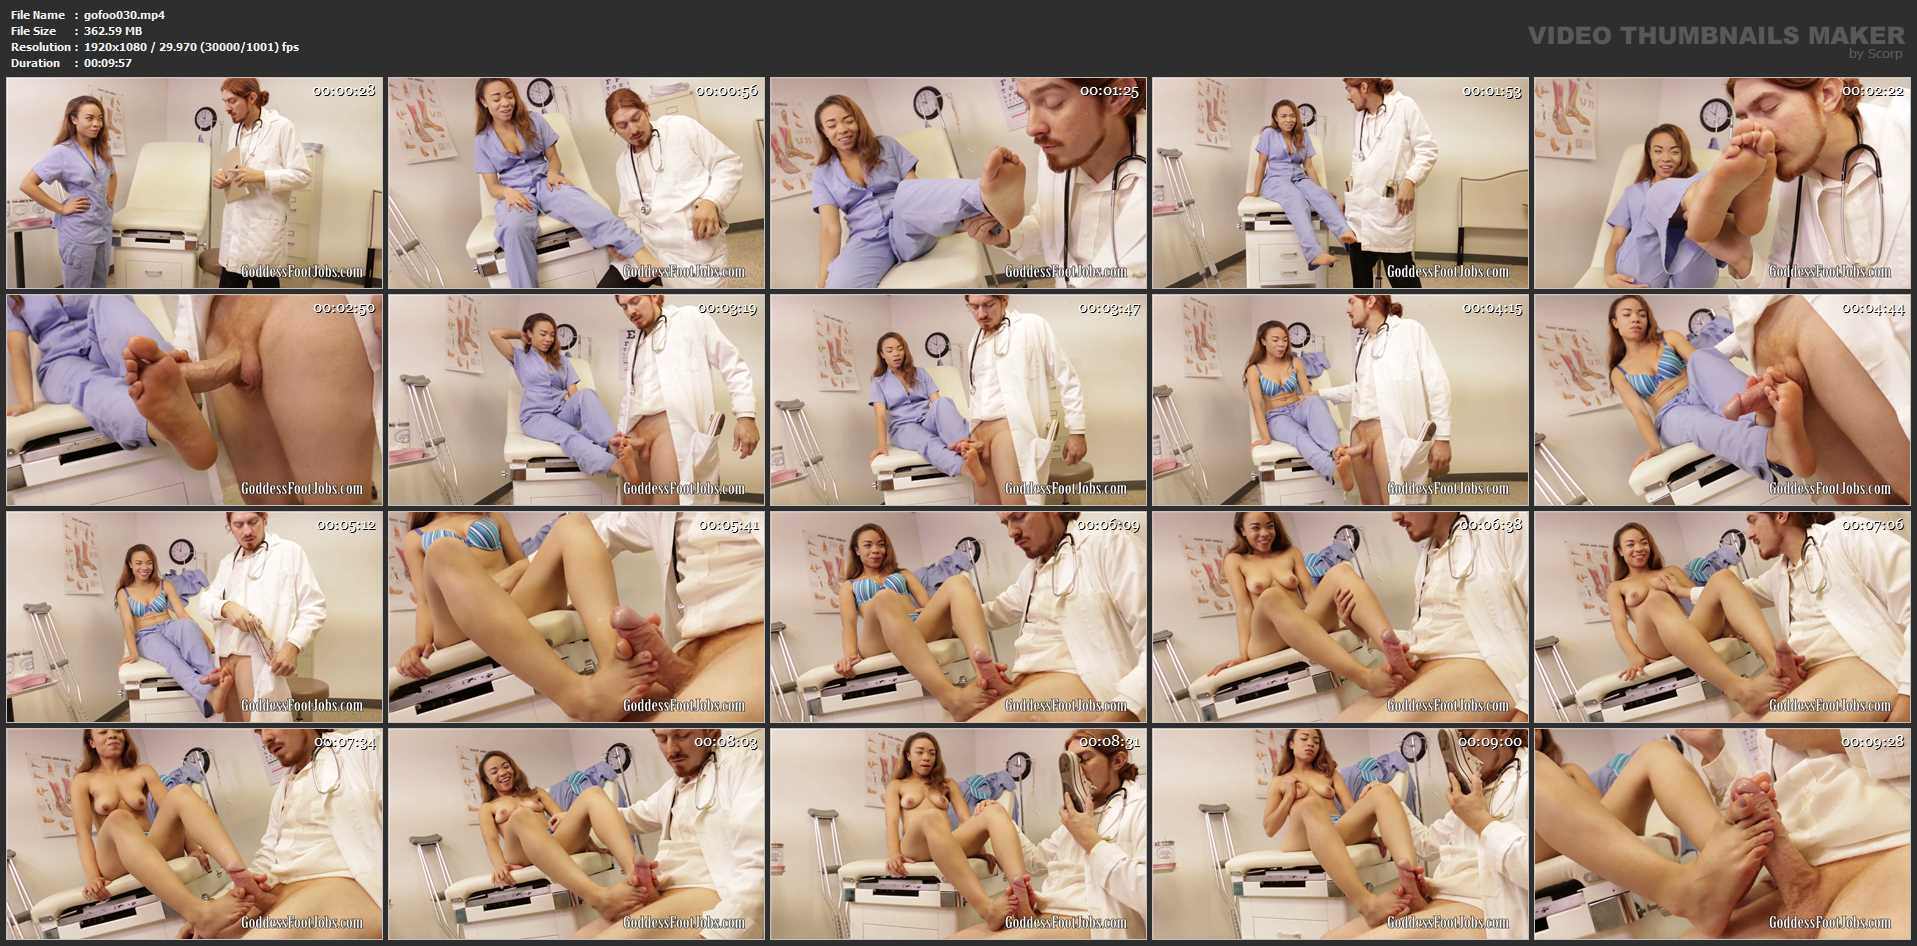 Jamie Marleigh In Scene: Can't Resist Nurse's Shoes - GODDESSFOOTJOBS - FULL HD/1080p/MP4